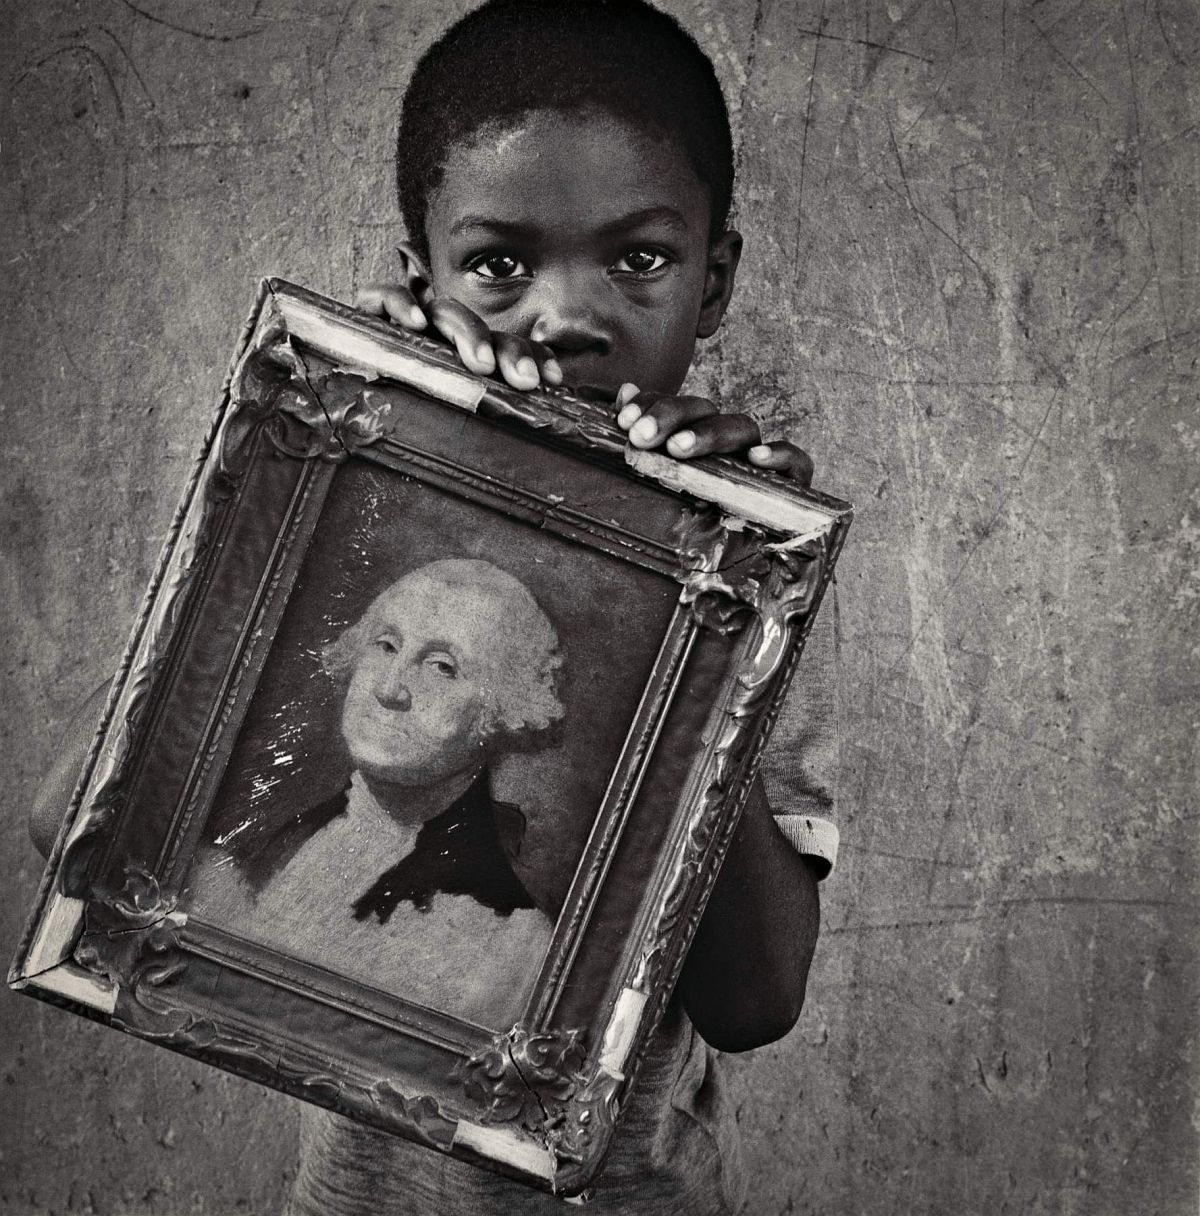 George Washington by Keith Carter, 1990